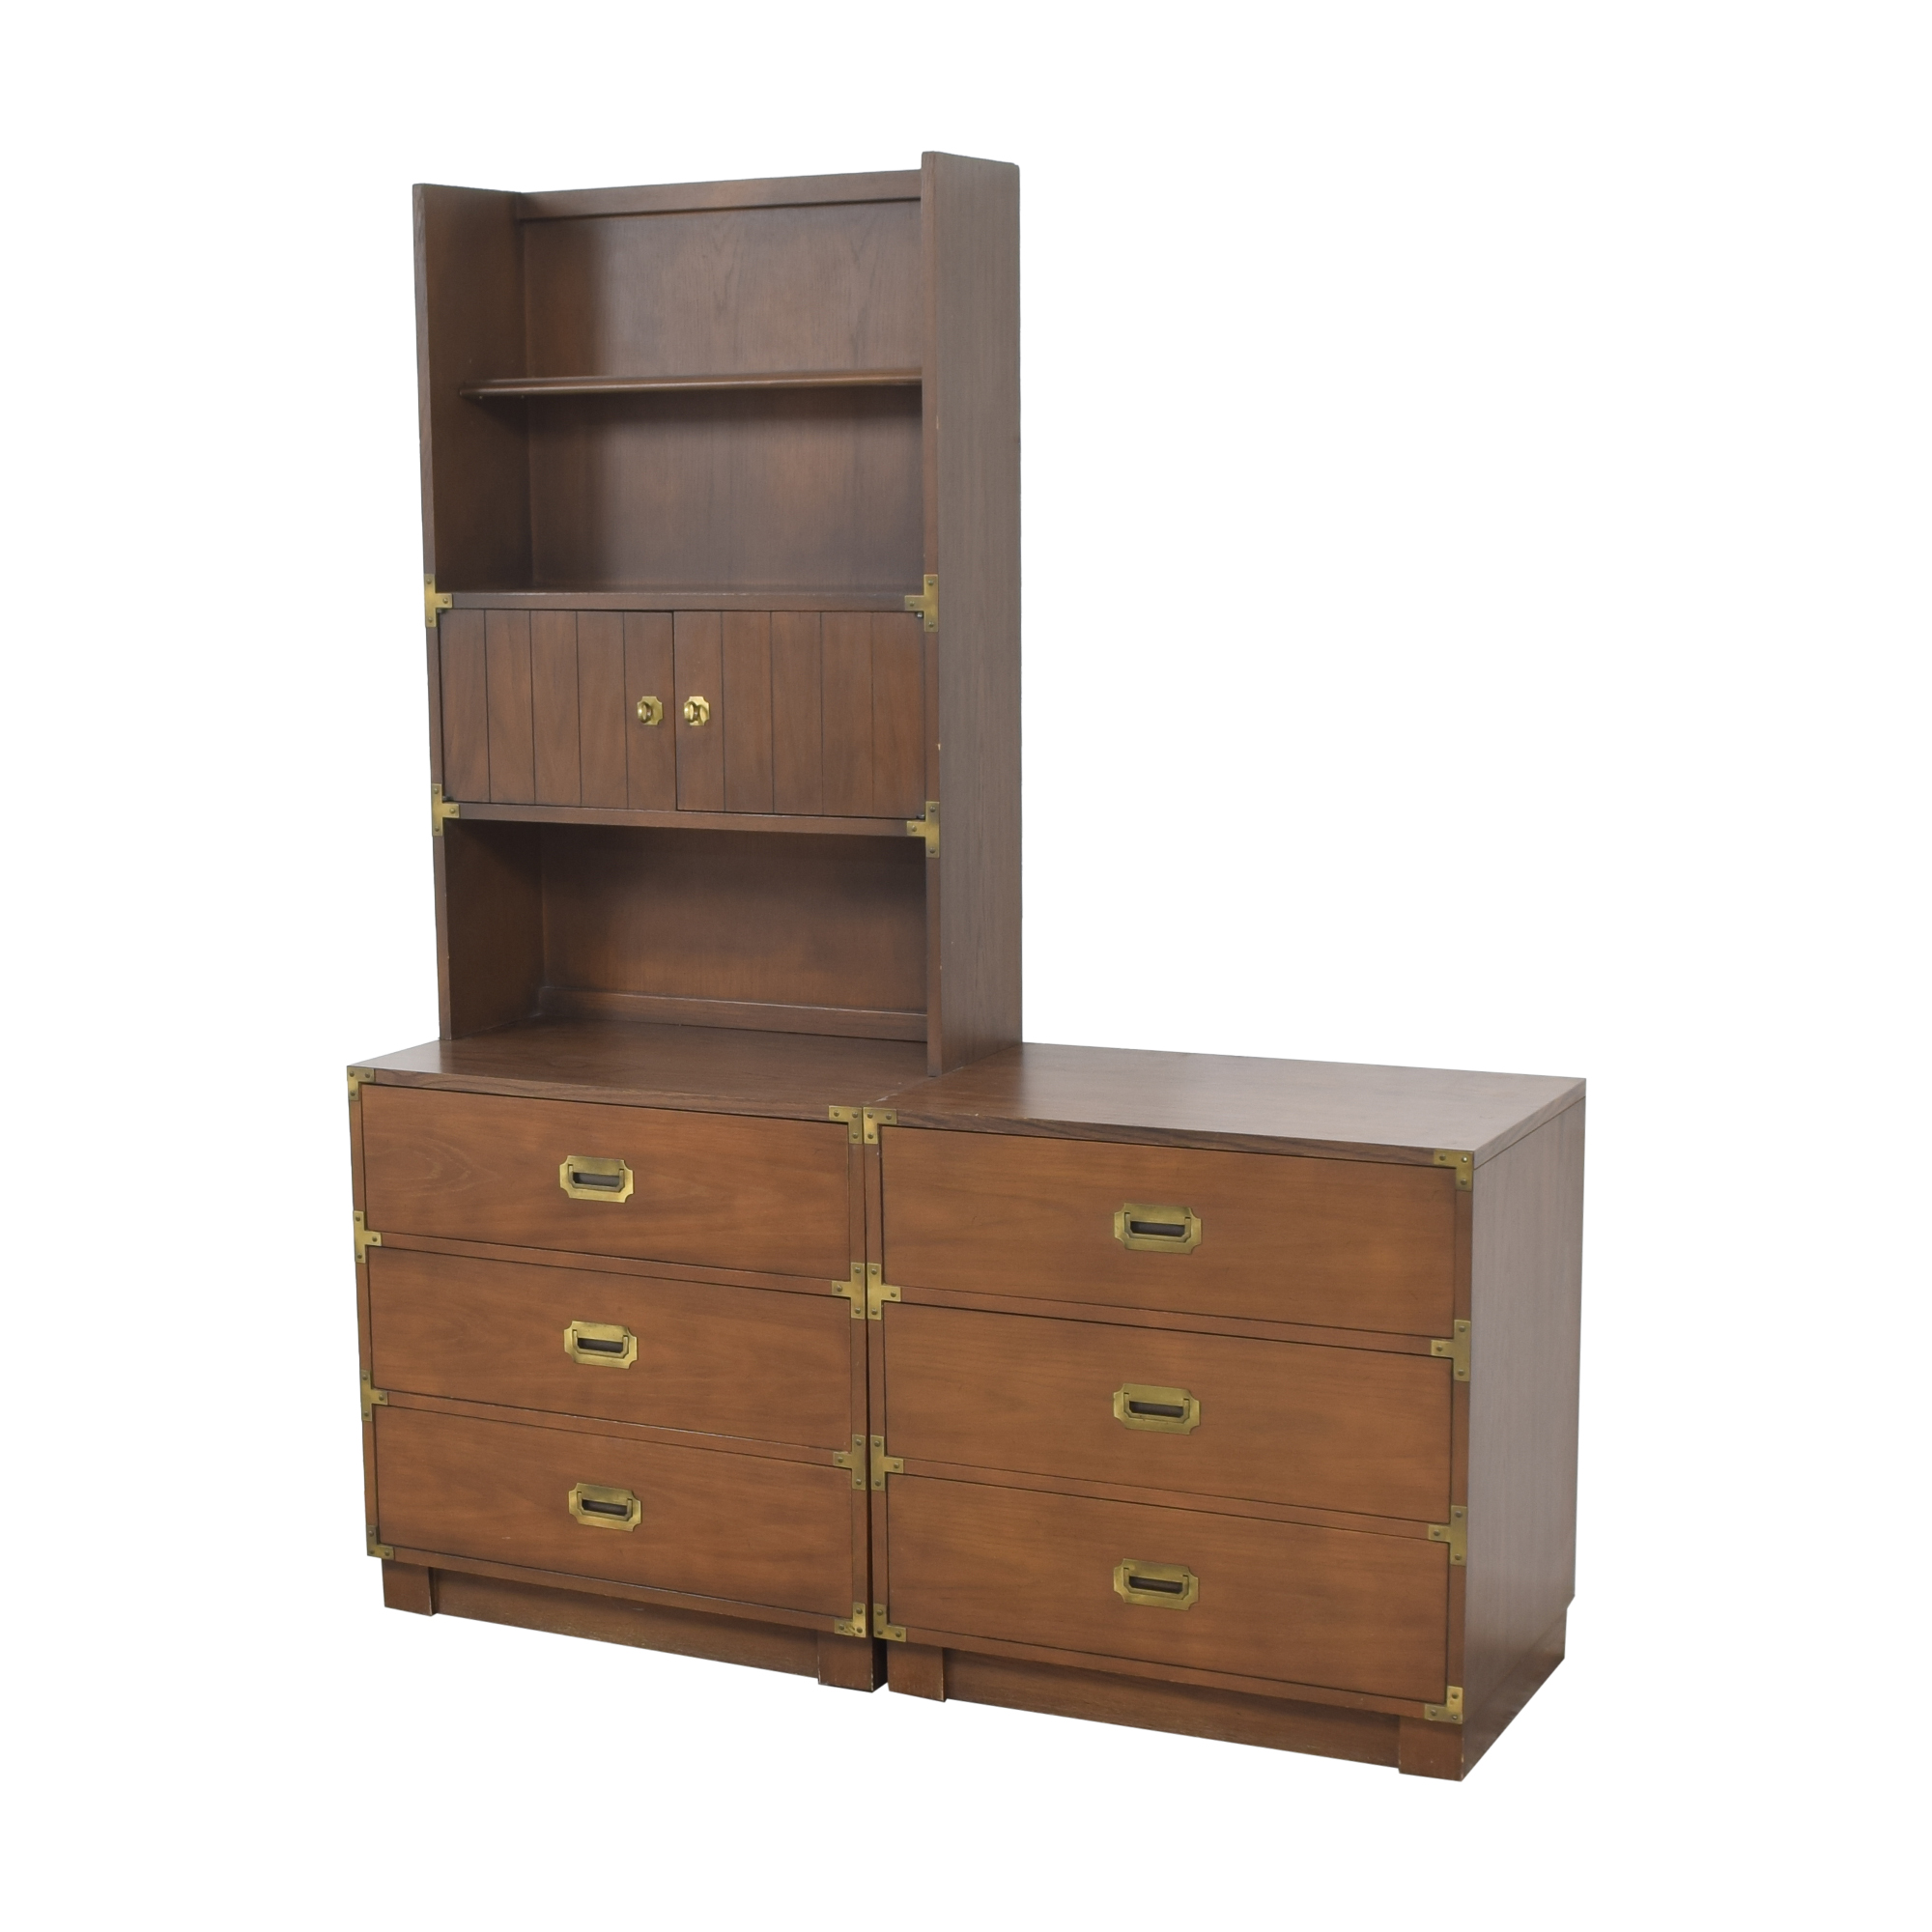 Drexel Firstmate Three Drawer Dressers with Hutch / Dressers